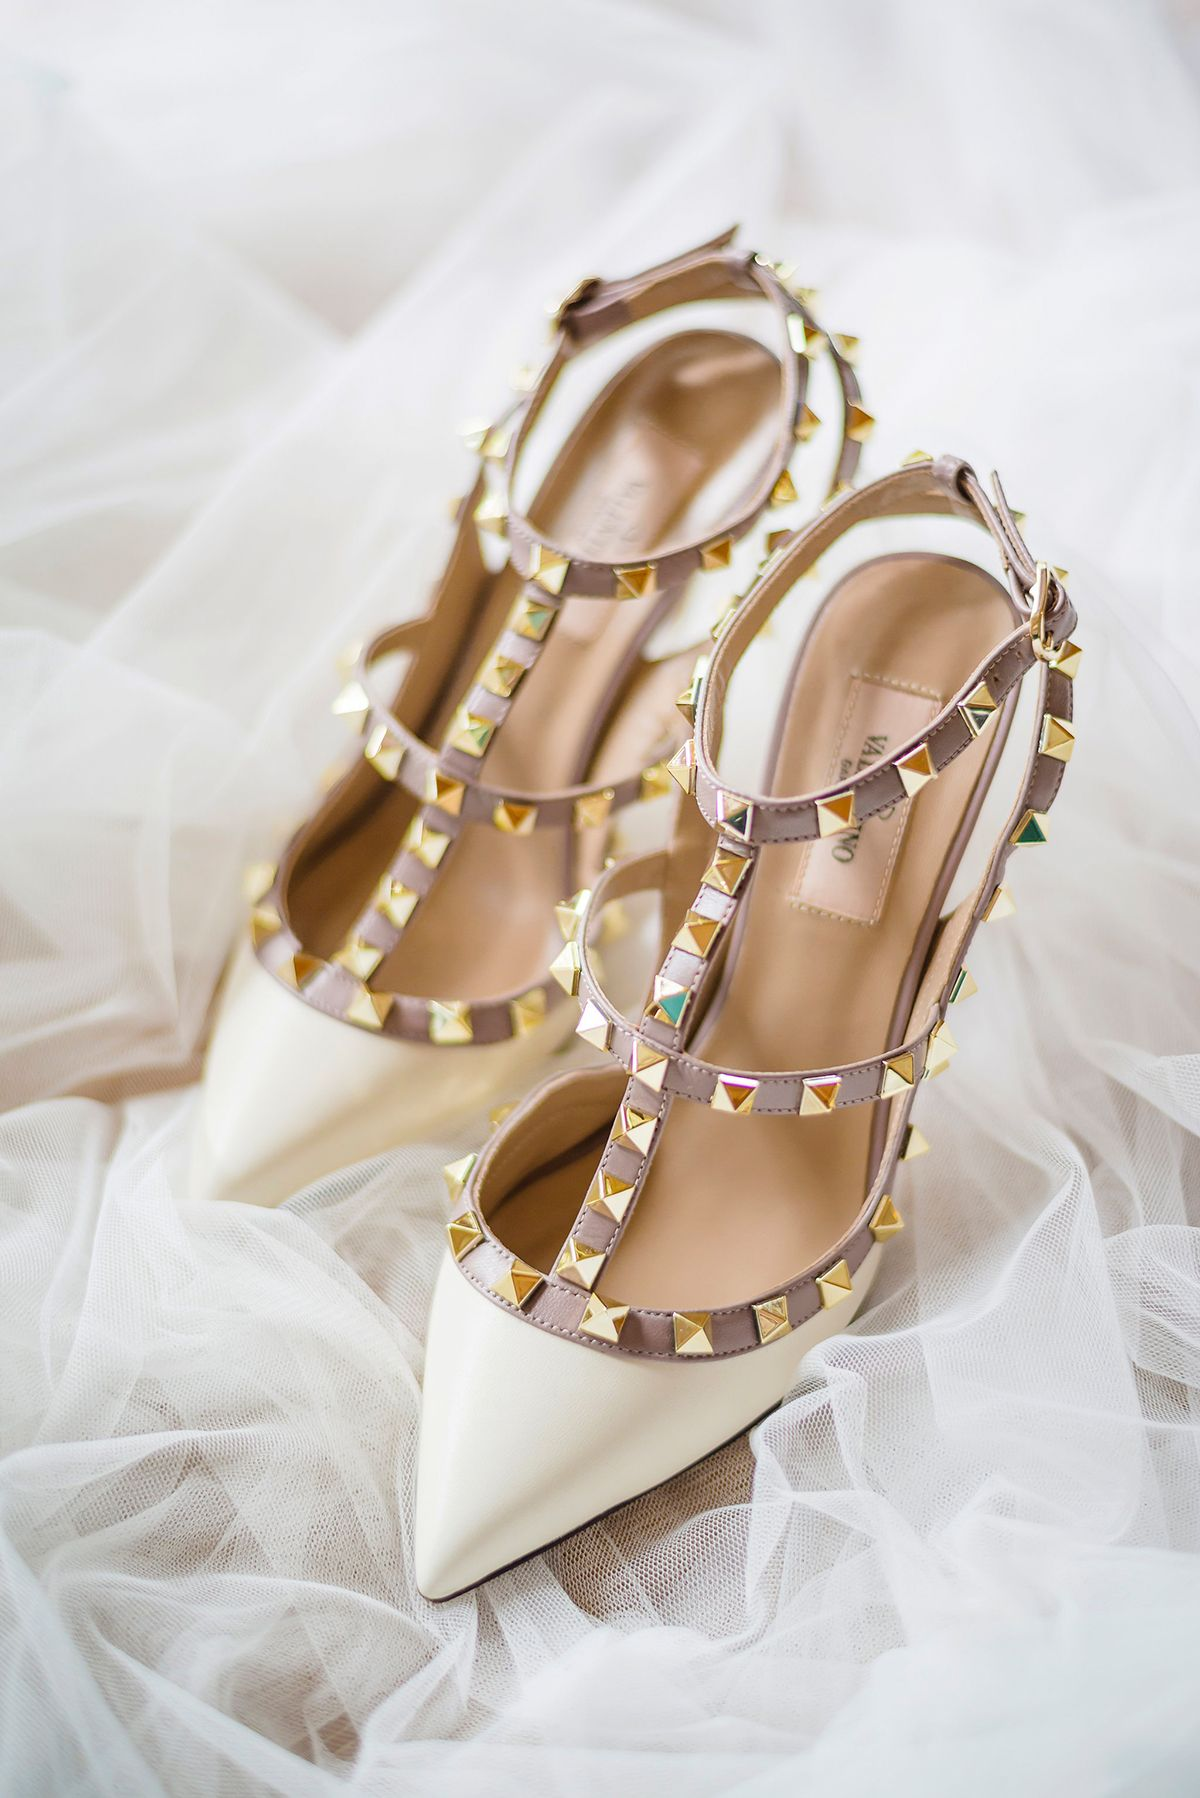 White Valentino Rockstud leather pumps - bridal shoes   Gary and Yanny s  bright, sunflower-filled destination wedding in Phuket, Thailand 3f90c4b3d6e